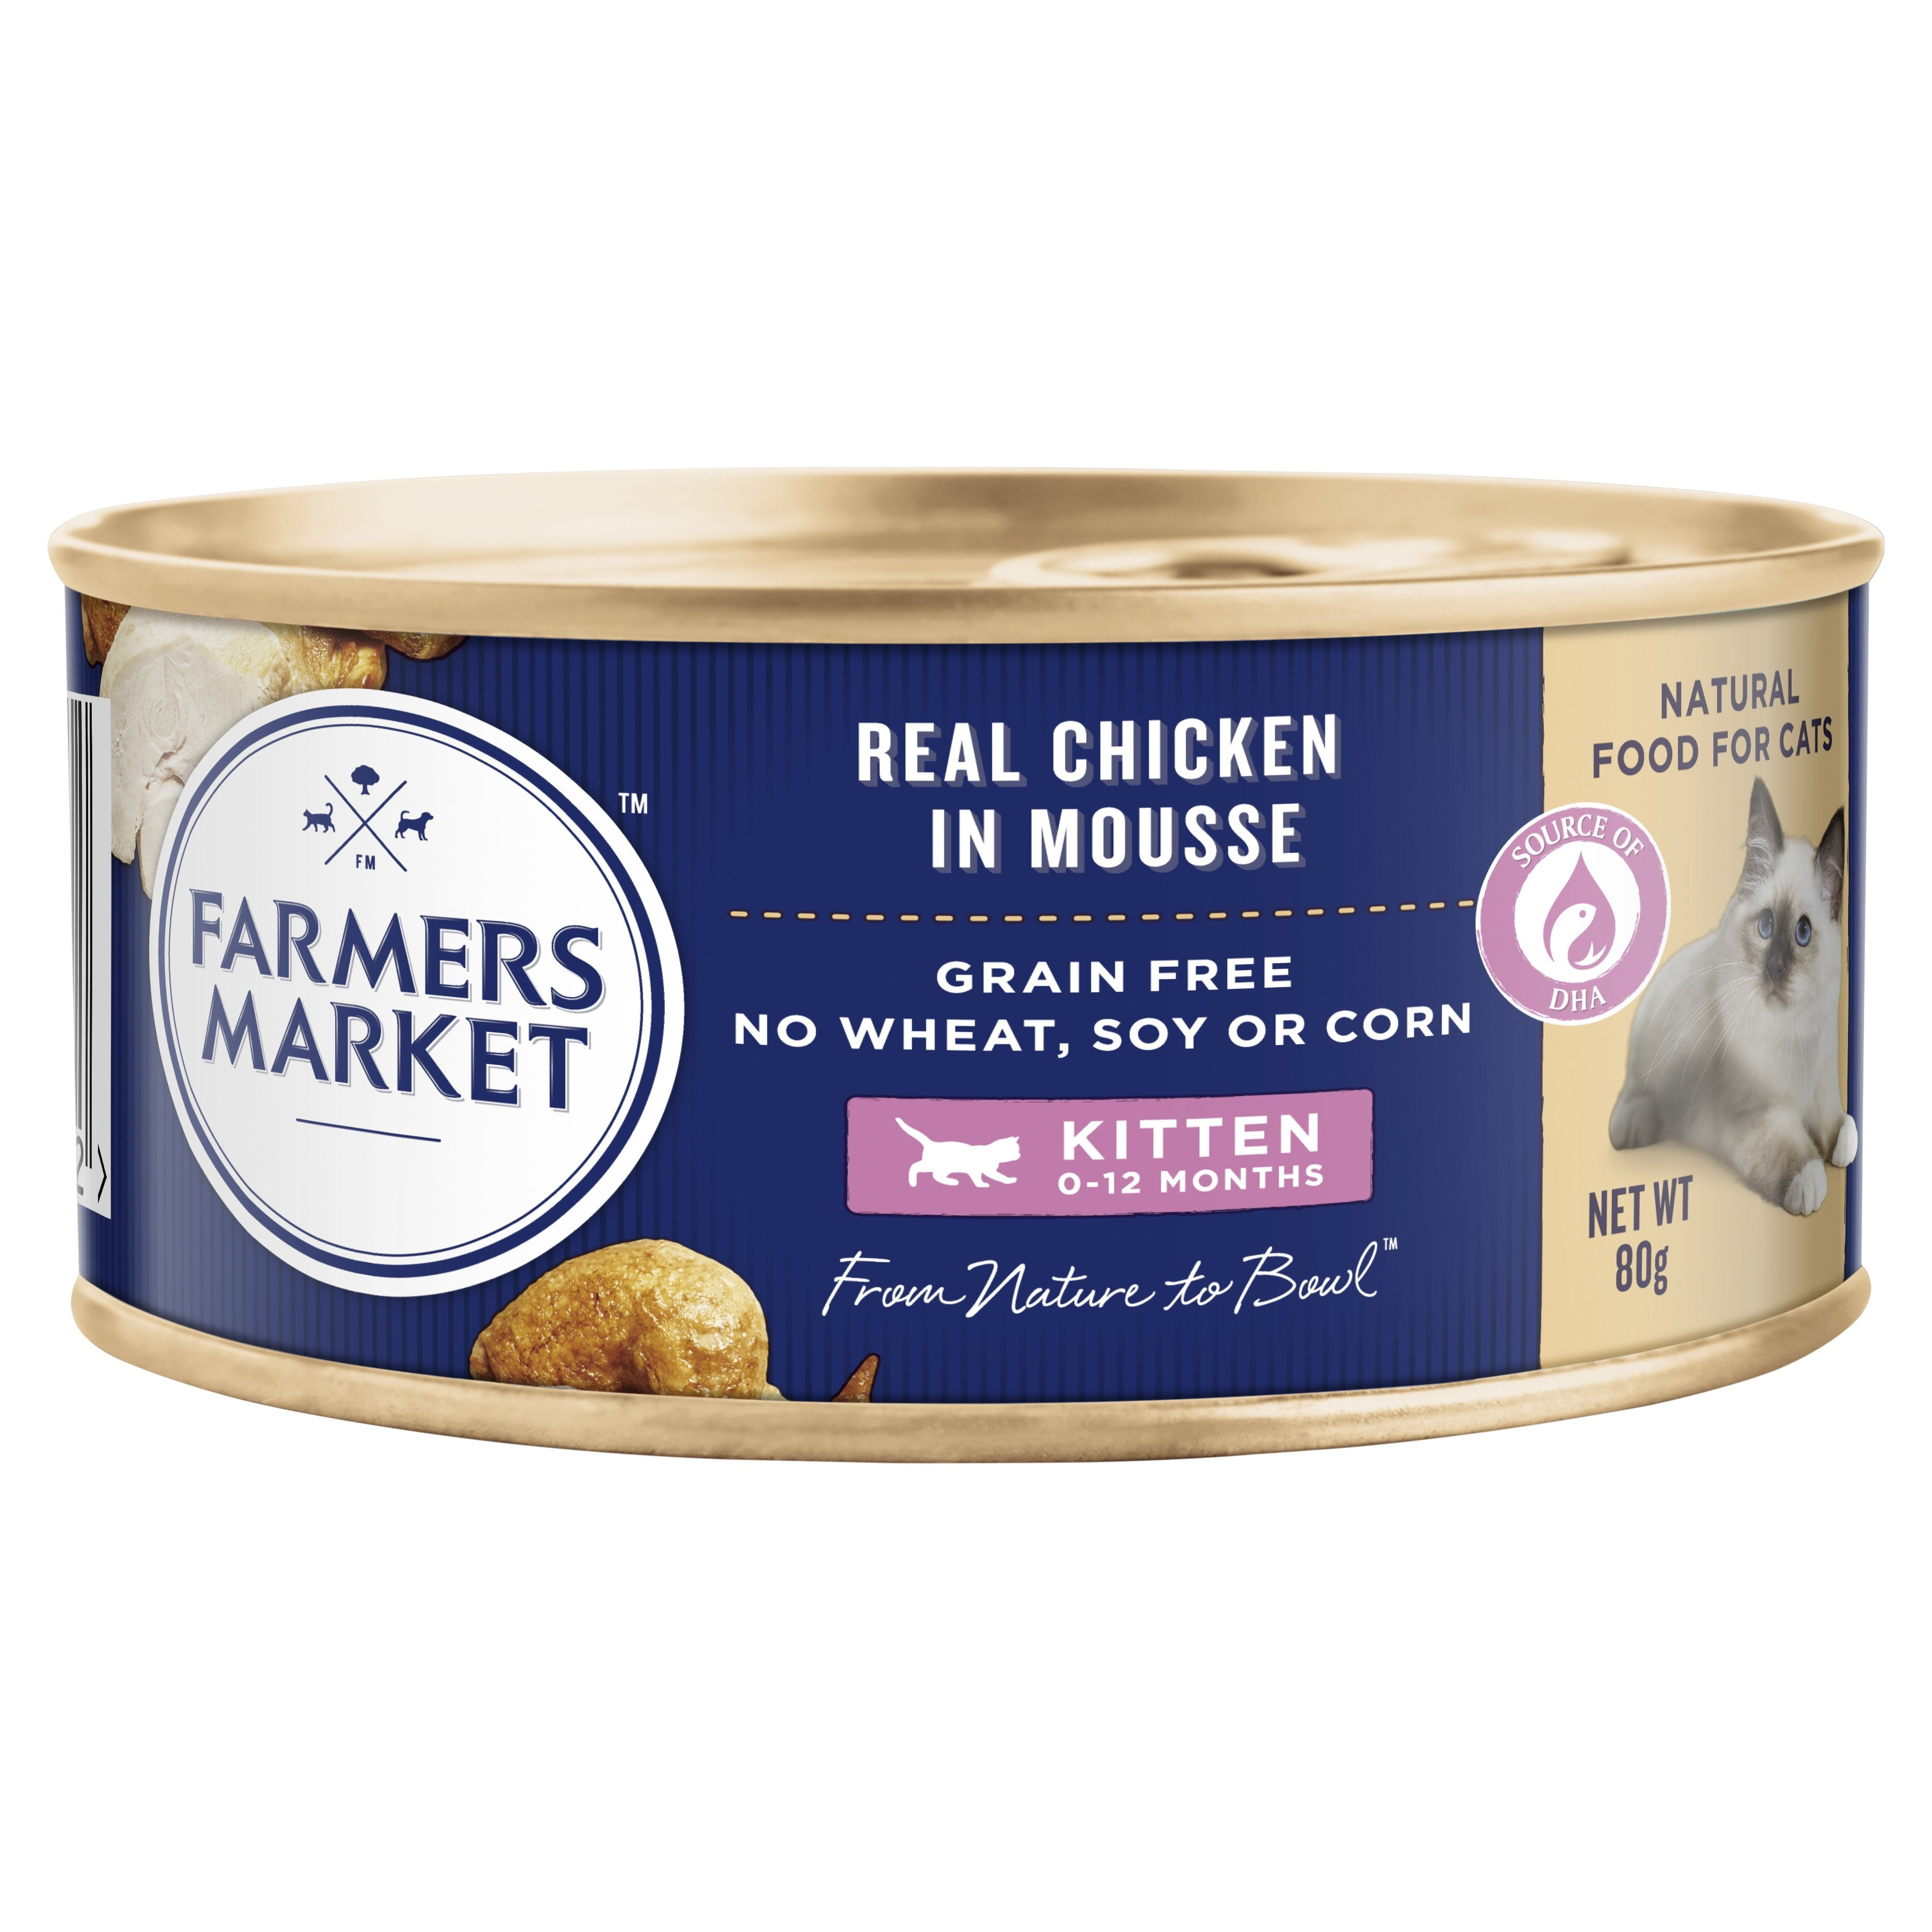 Farmers Market Real Chicken in Mousse Grain-Free Kitten Food for 0-12 Months